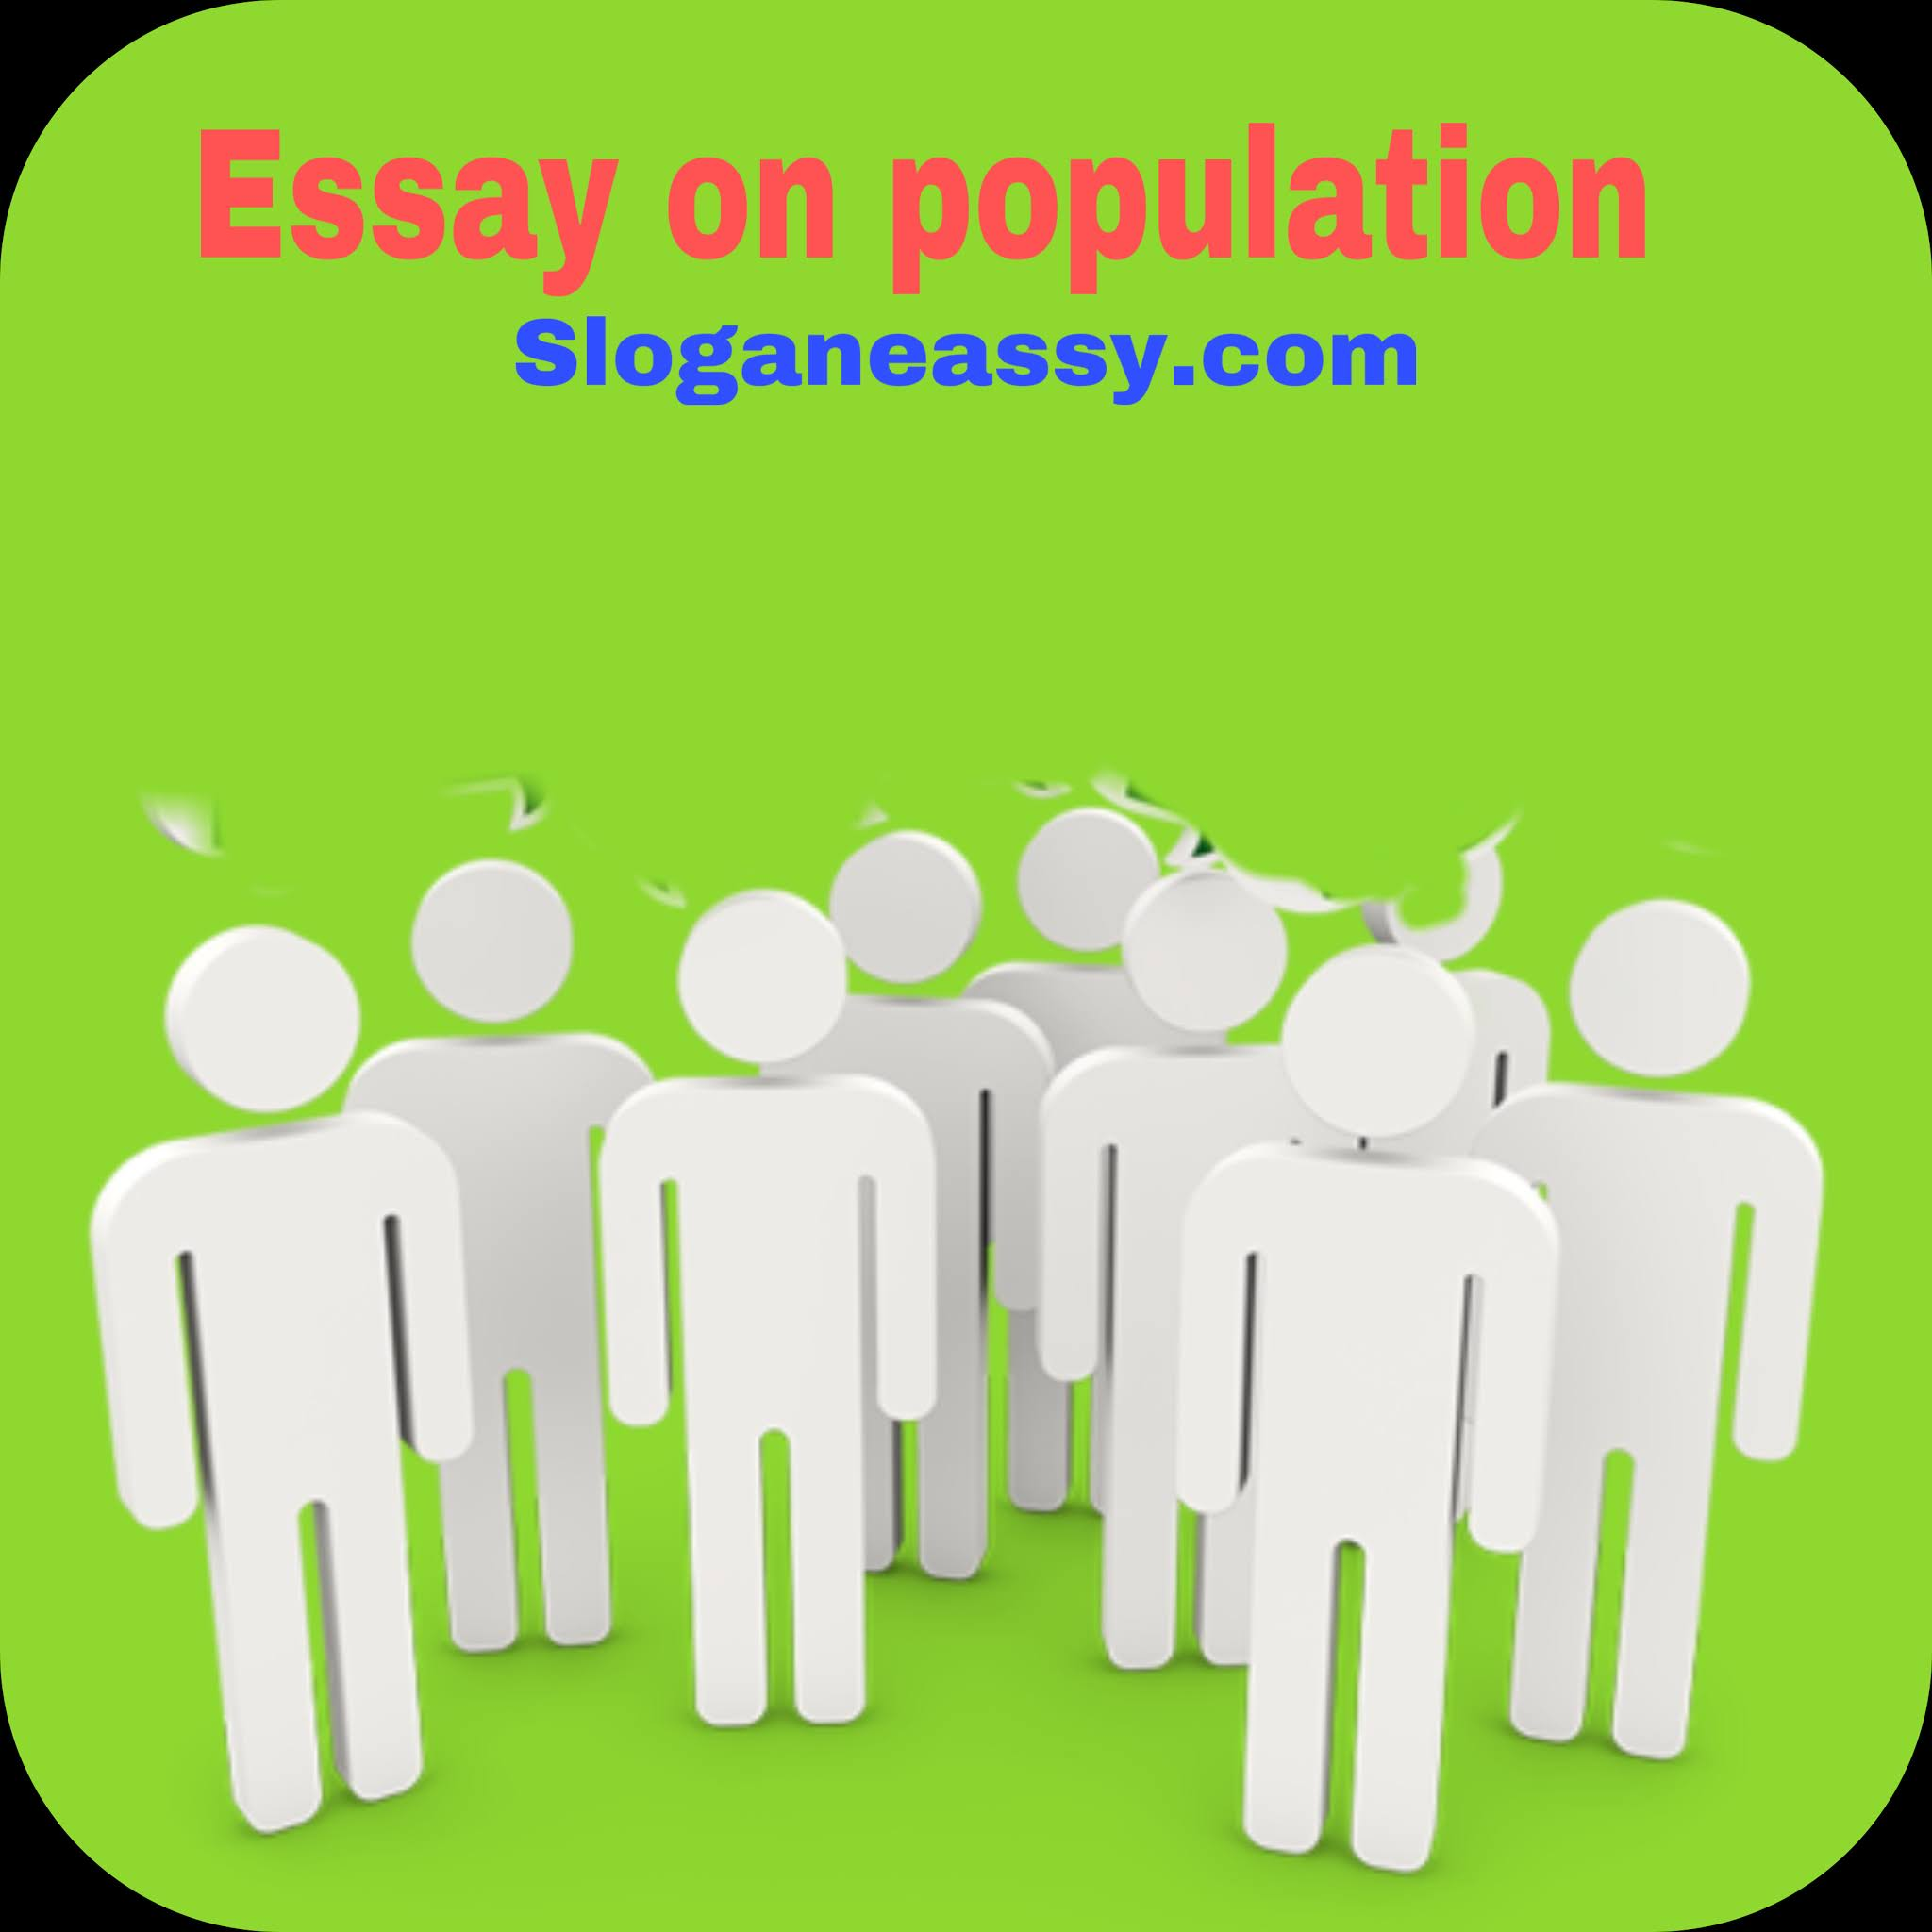 Essay on population in india